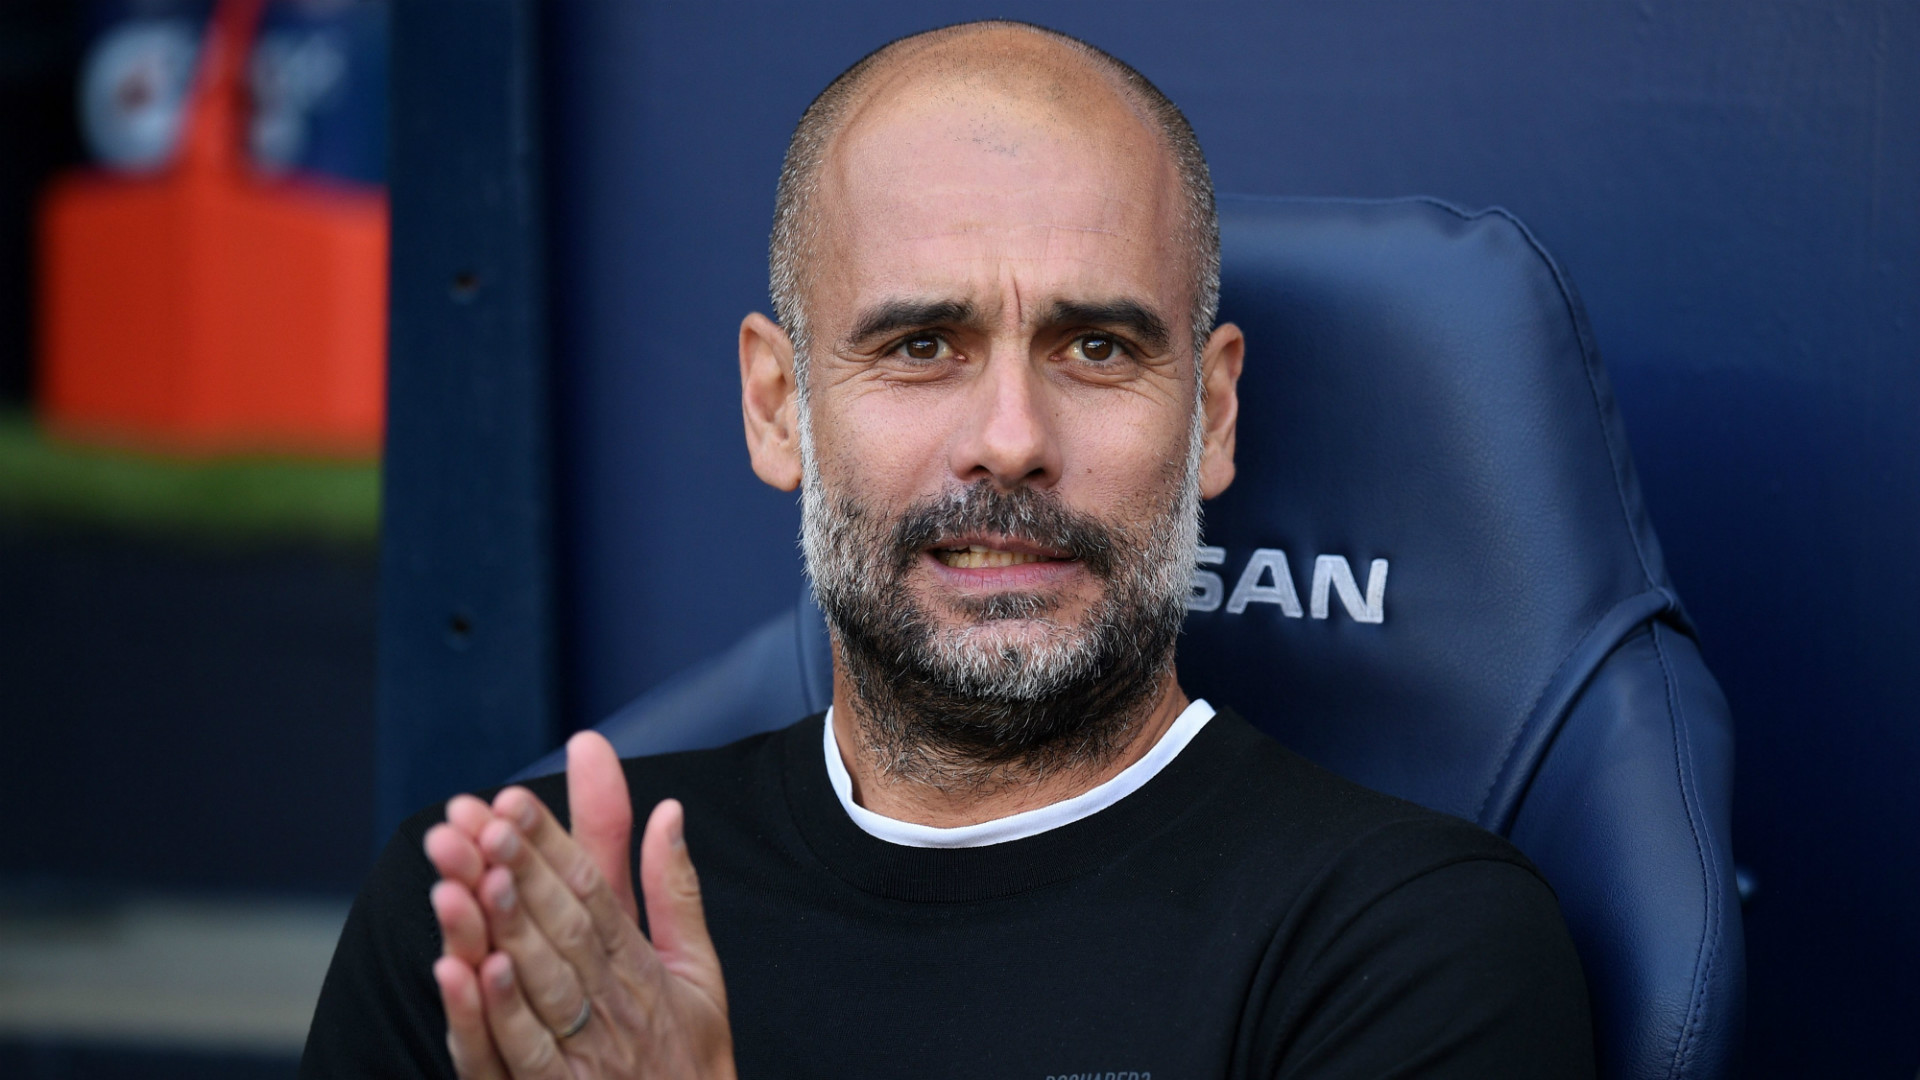 Pep Guardiola news: 'A genius that football gave us as a gift ...